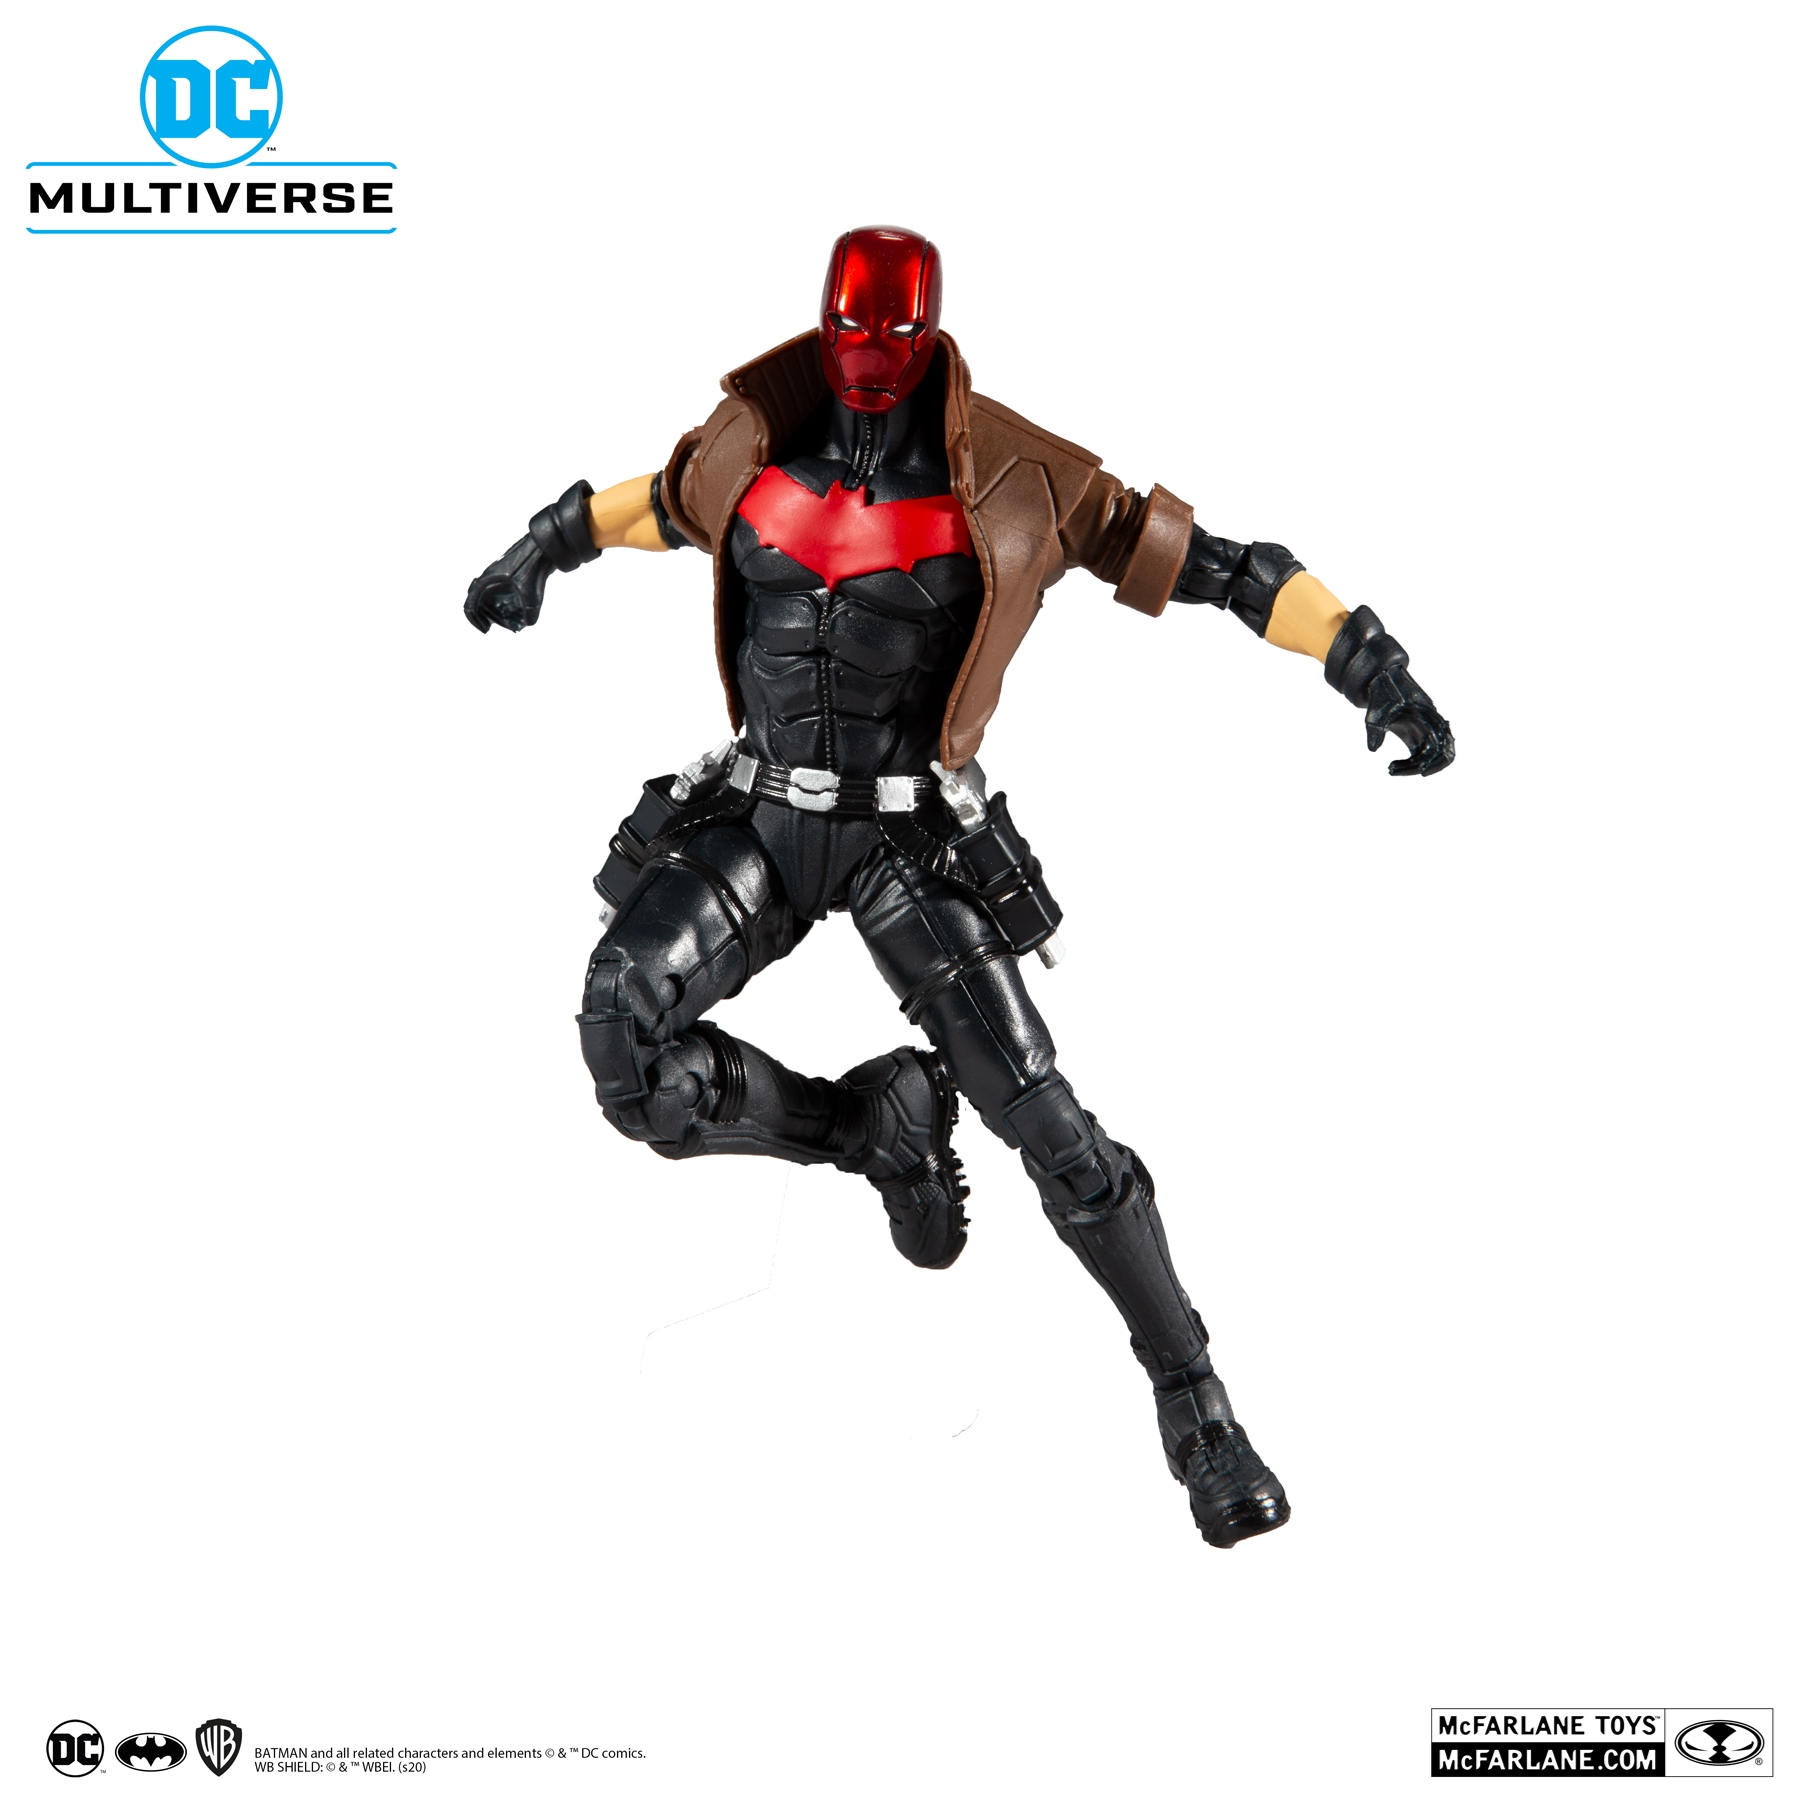 DC Action Figure (Multiverse) - Red Hood